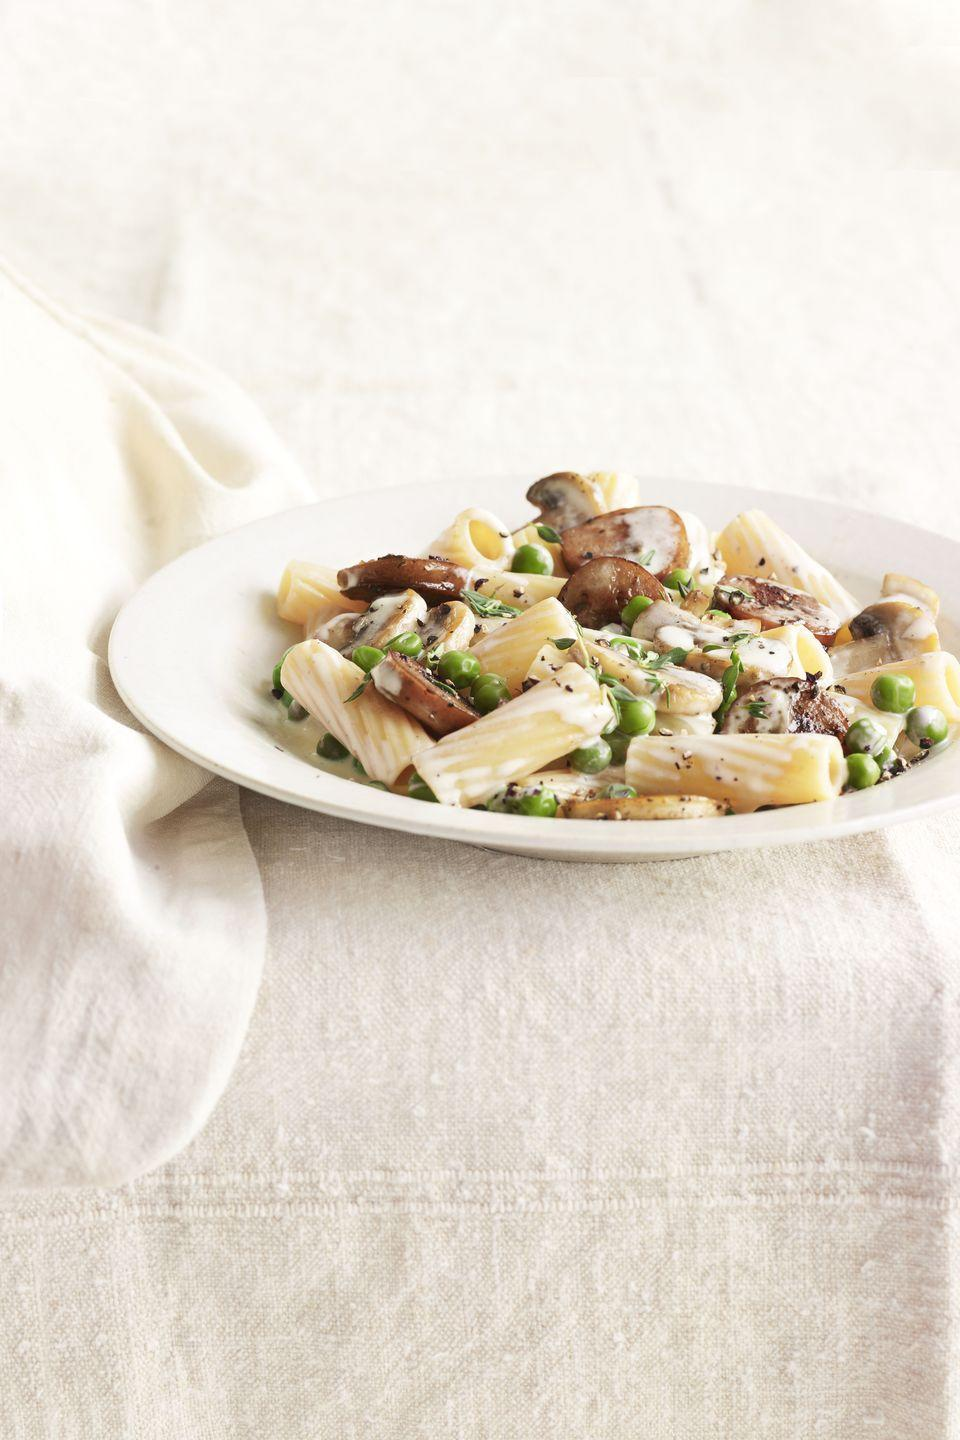 """<p>When it comes to pasta with cream sauce, you can't beat the trifecta of mushrooms, sausage, and peas. Even better? Lightening things up with a little white wine and thyme.</p><p><strong><a href=""""https://www.countryliving.com/food-drinks/recipes/a4105/rigatoni-sausage-peas-mushrooms-recipe-clv0512/"""" rel=""""nofollow noopener"""" target=""""_blank"""" data-ylk=""""slk:Get the recipe."""" class=""""link rapid-noclick-resp"""">Get the recipe.</a></strong></p>"""